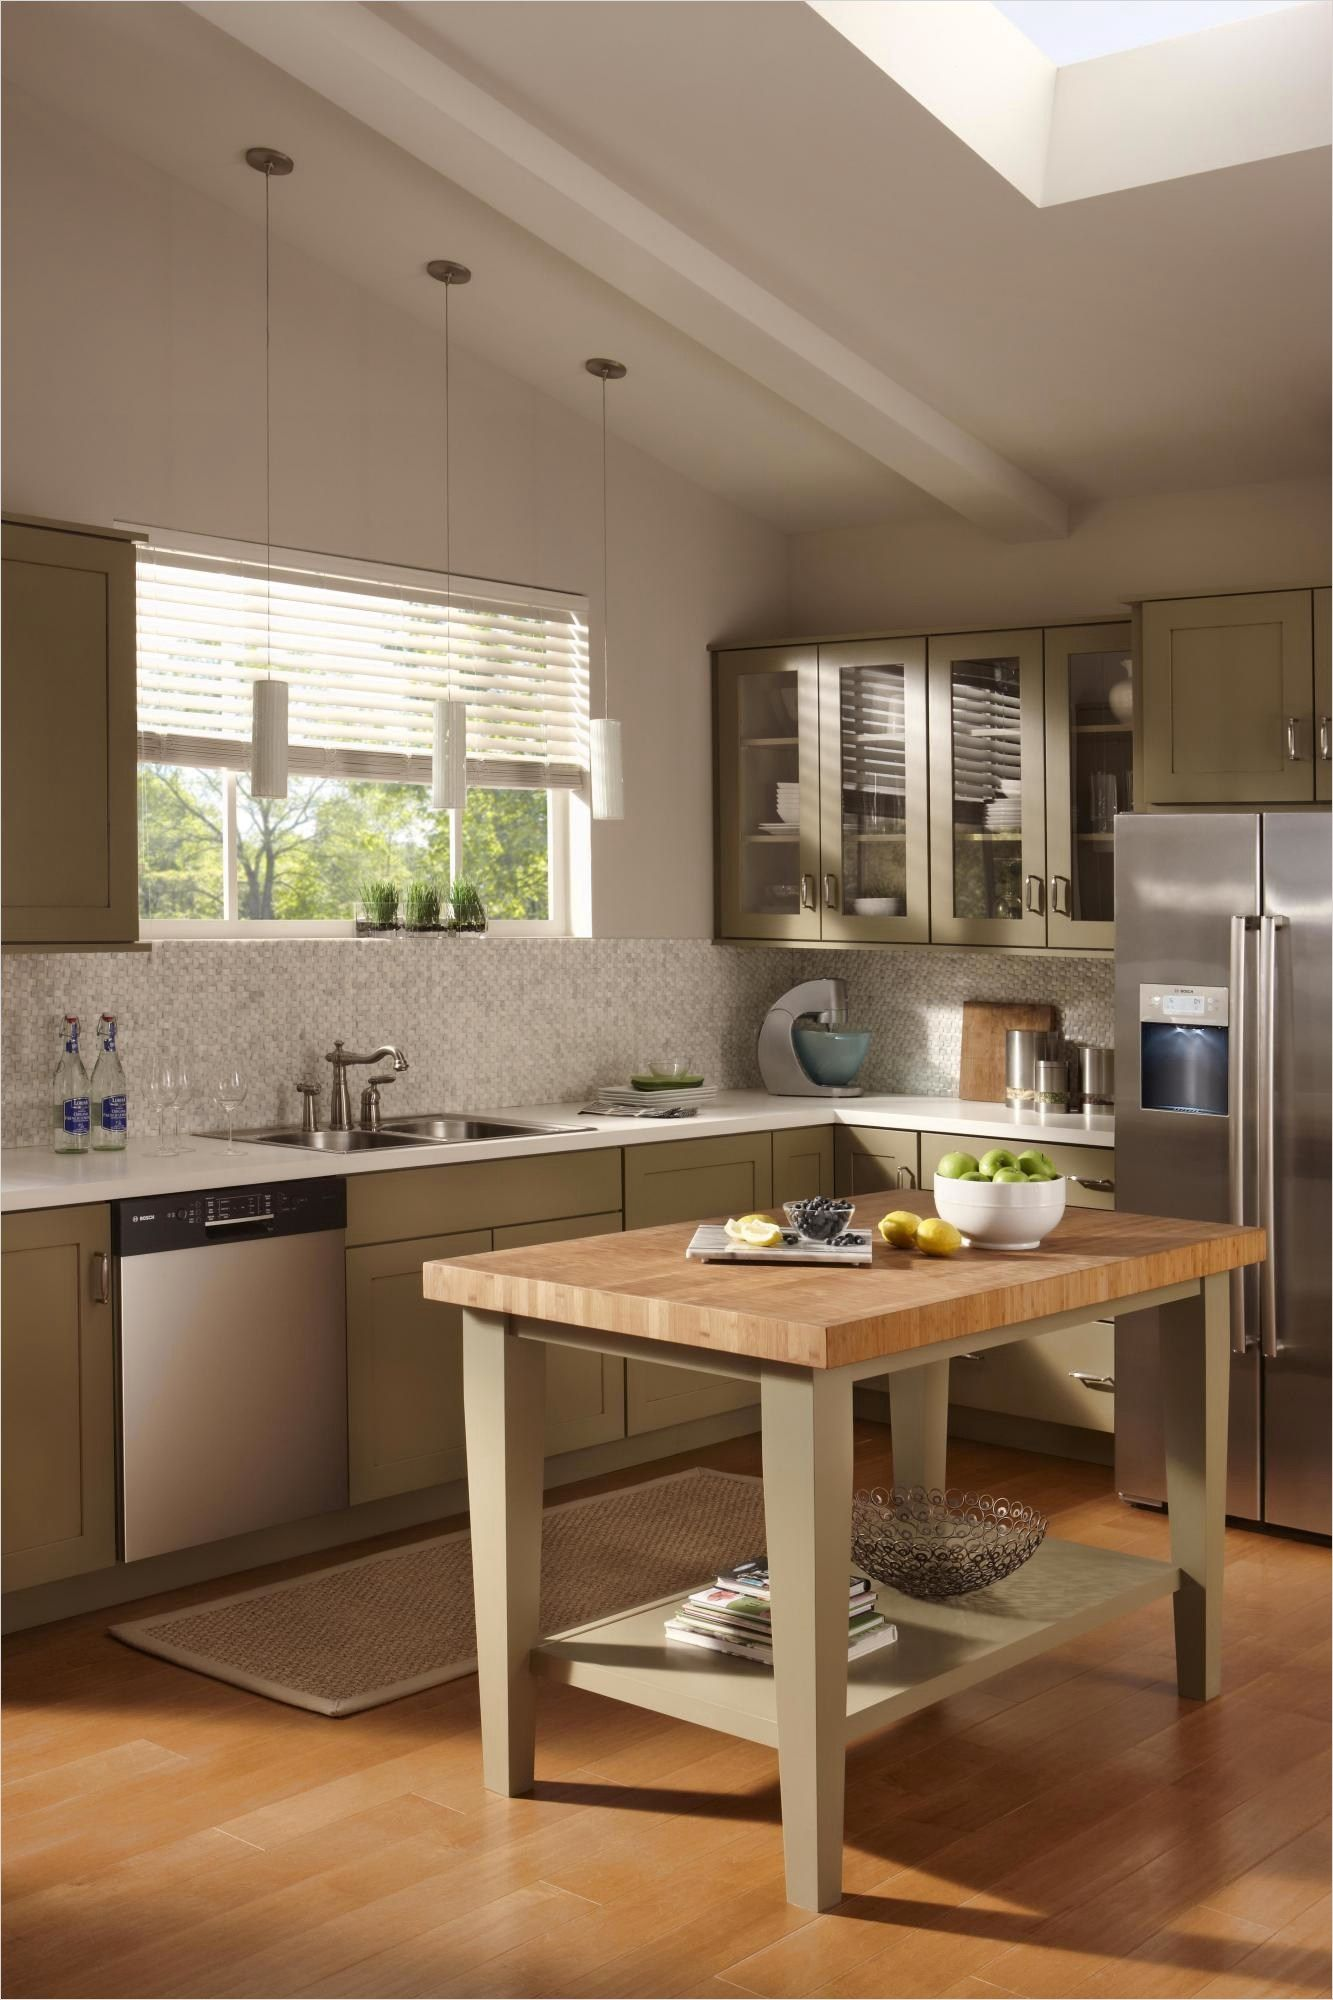 44 perfect ideas small kitchen designs with islands that will impress you kitchen design small on kitchen layout ideas with island id=93409